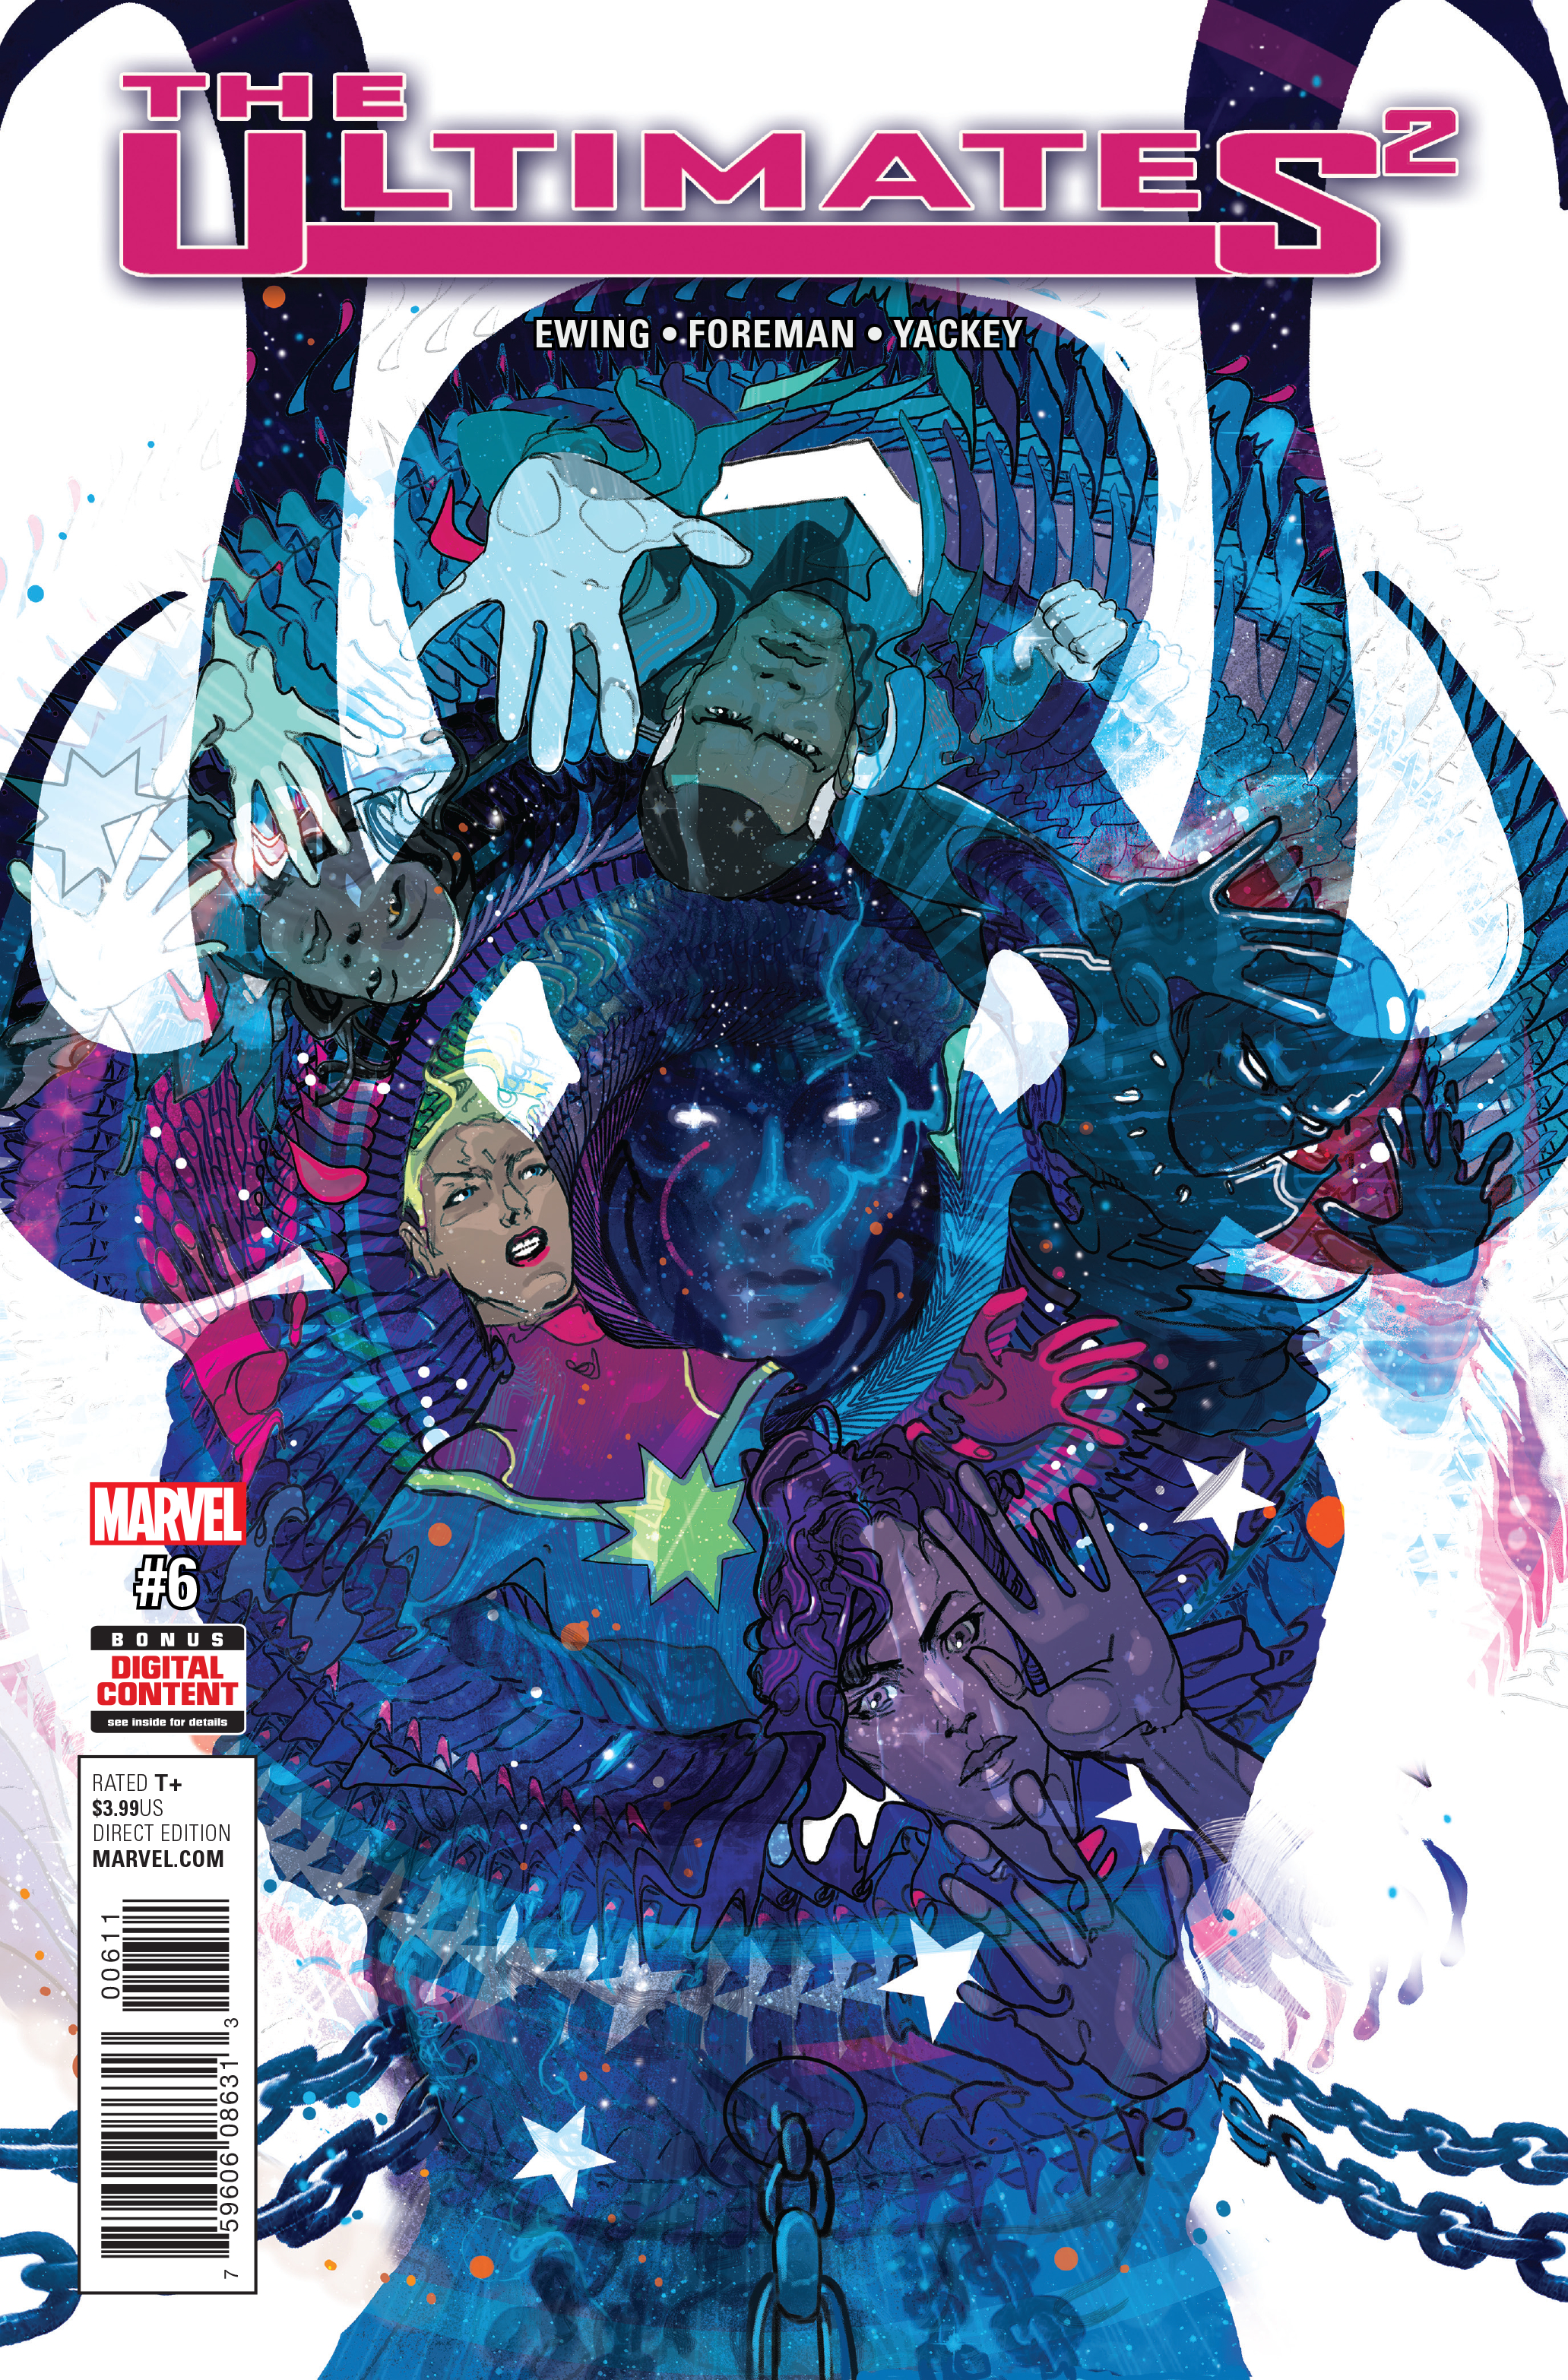 ULTIMATES 2 #6